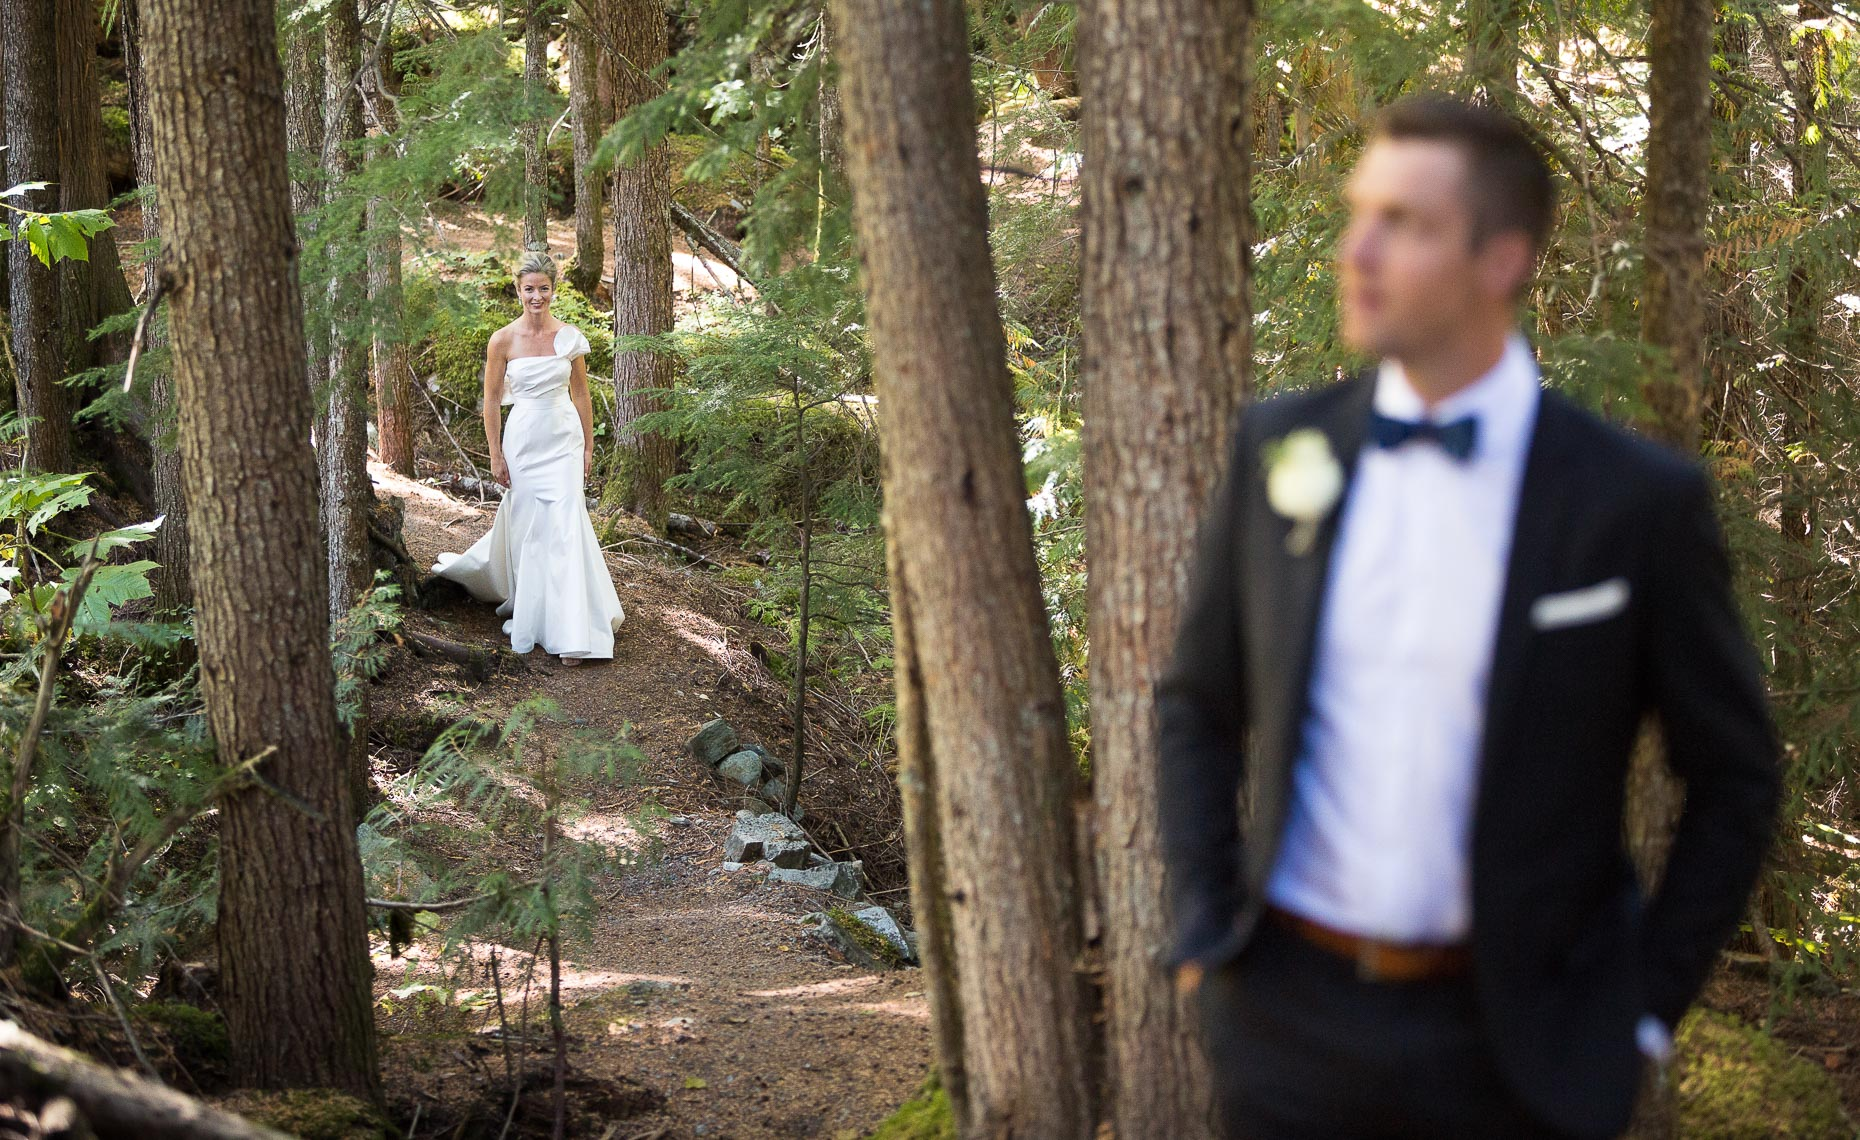 Wedding couple in the forest in Whistler during first look